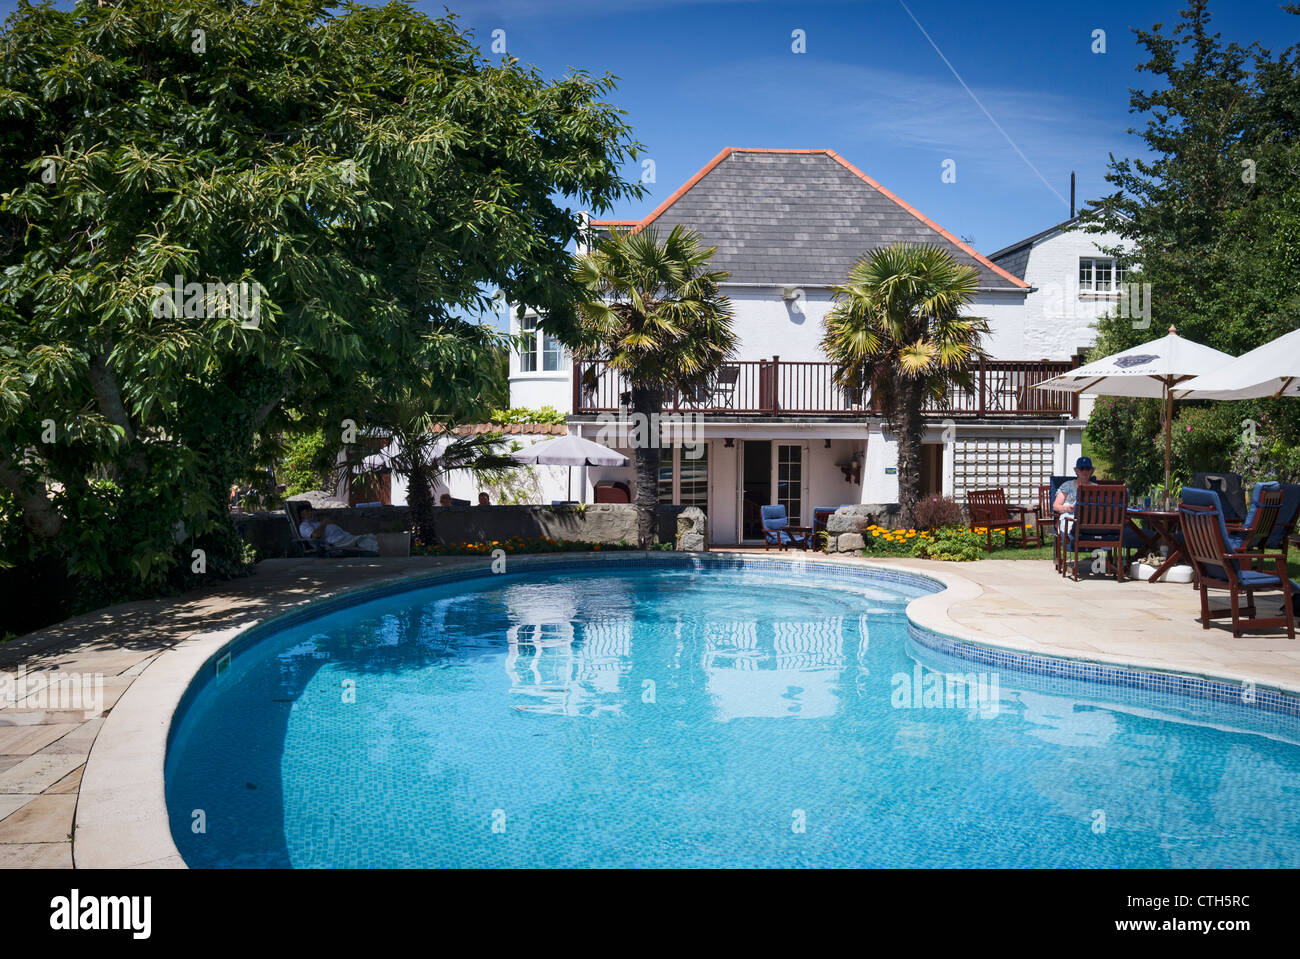 Outdoor swimming pool house uk stock photos outdoor - Uk hotels with outdoor swimming pools ...